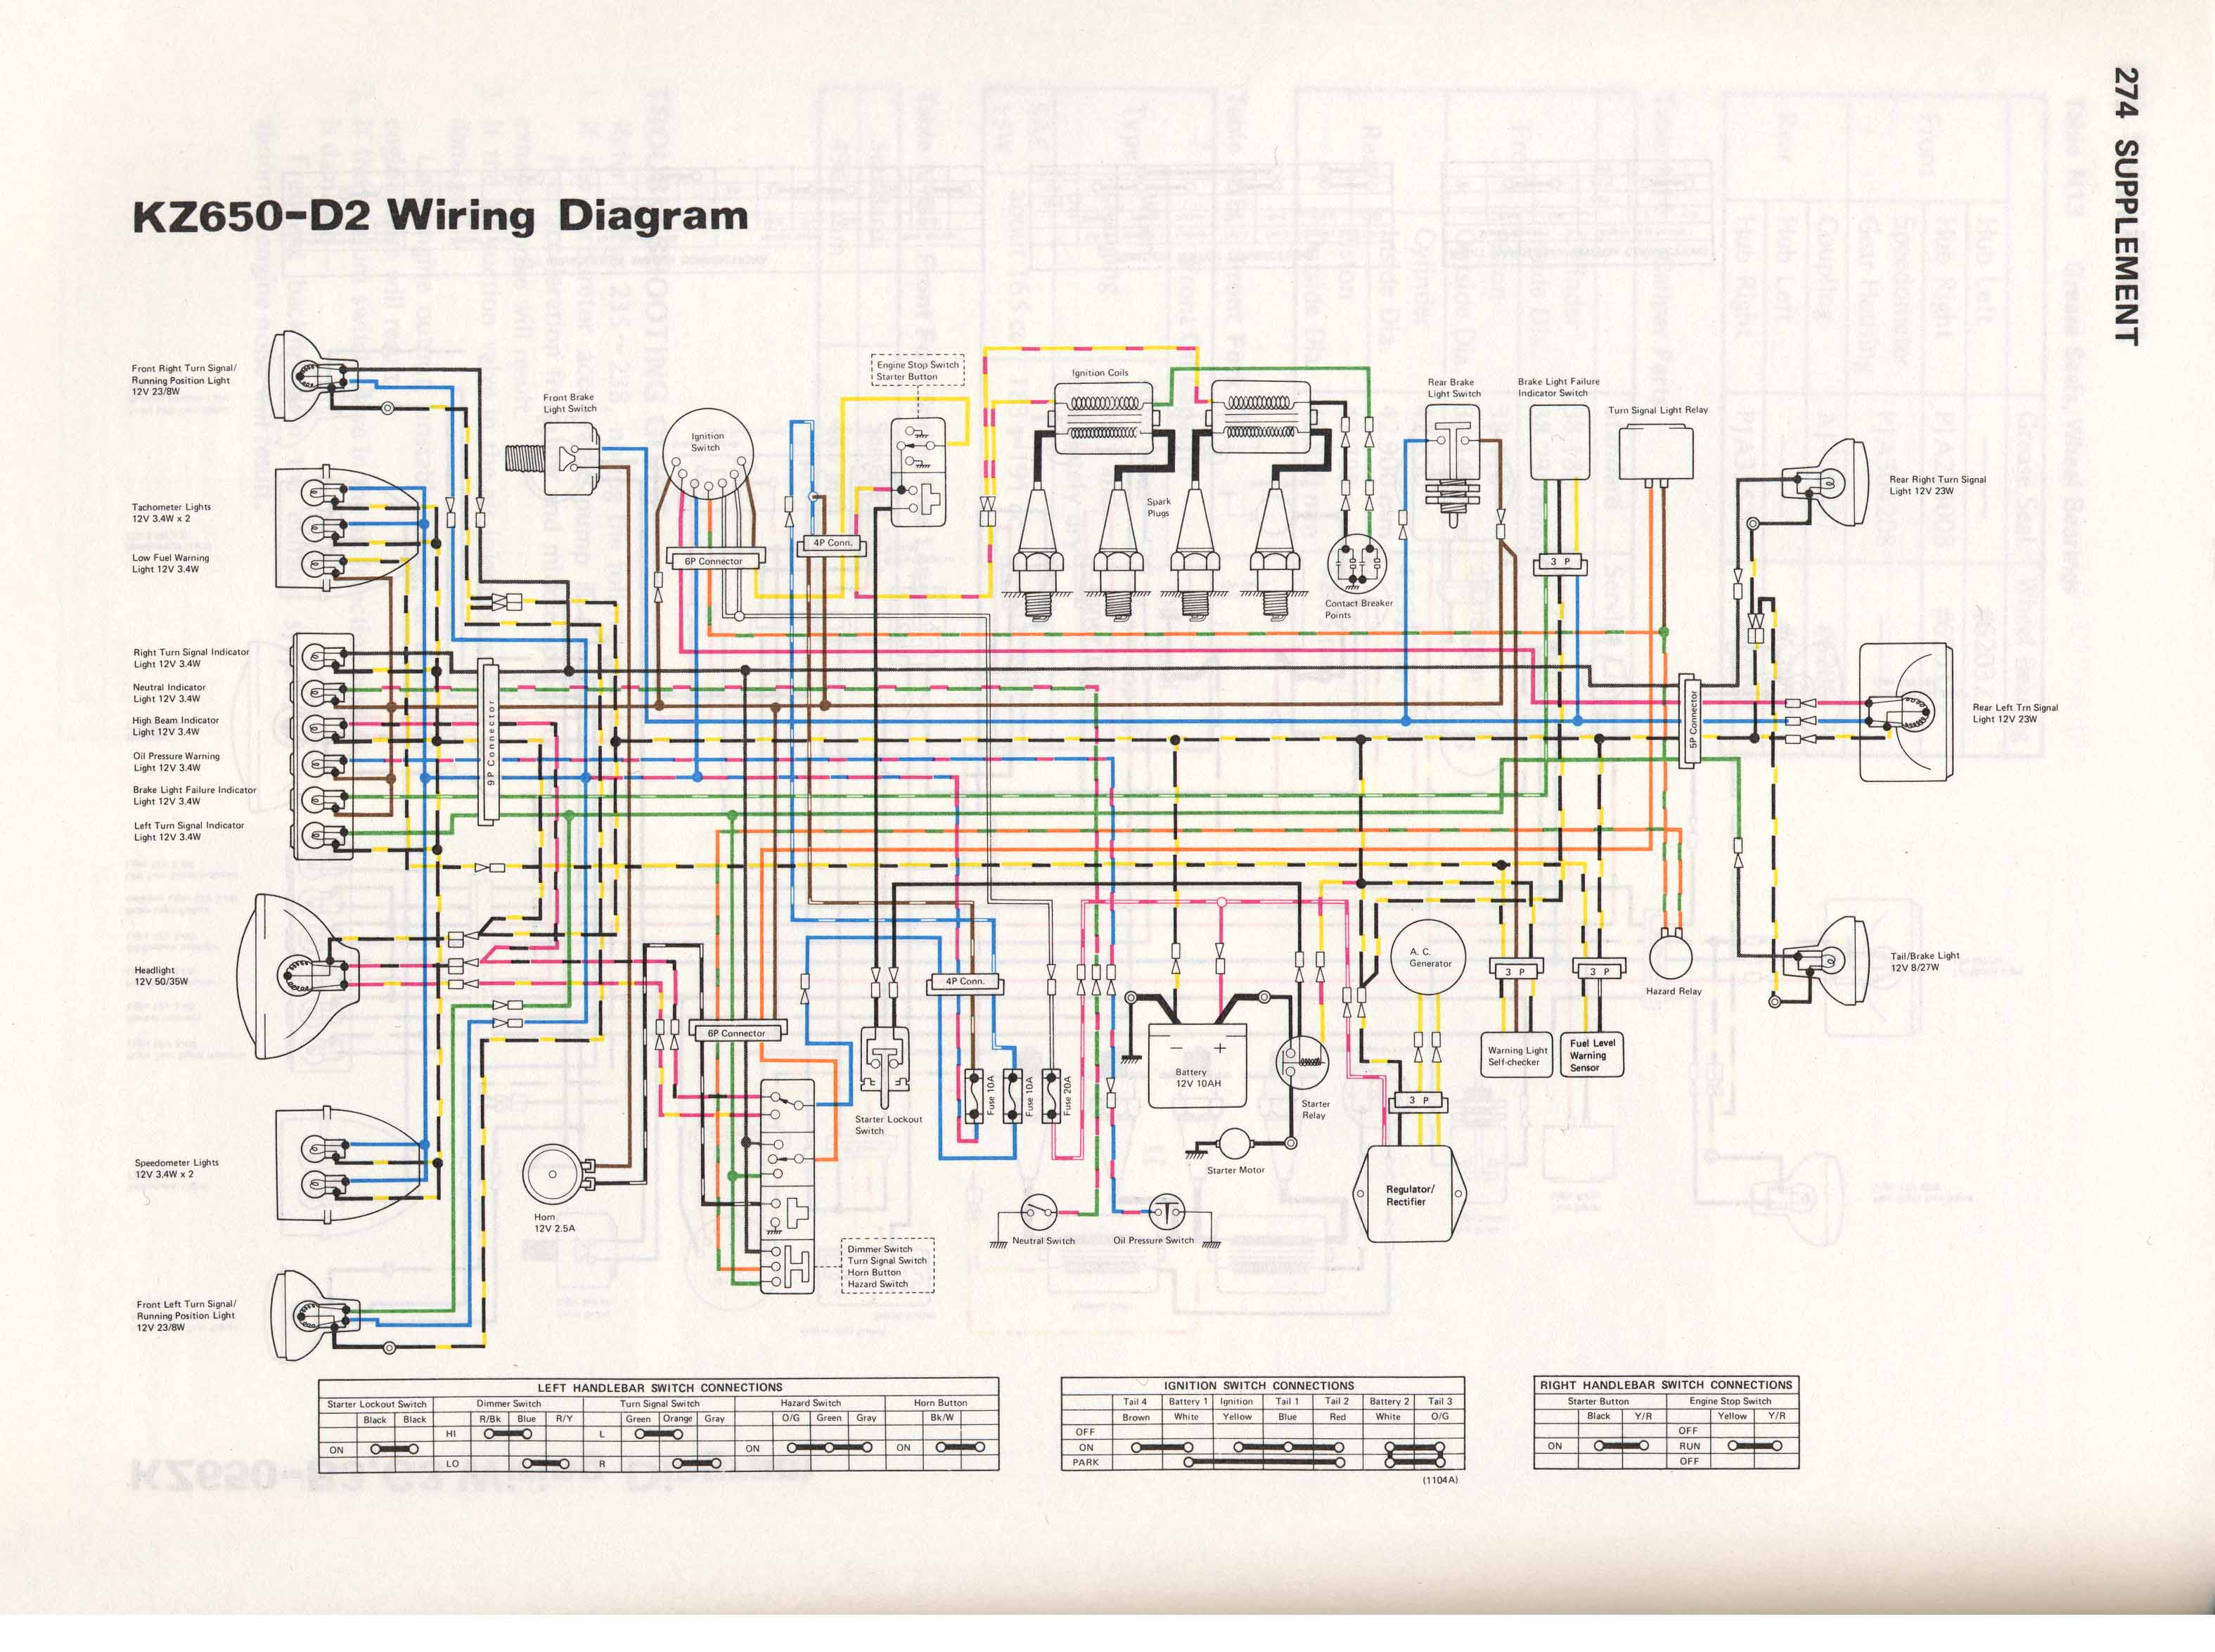 KZ650 D2 kz650 info wiring diagrams 77 corvette wiring diagram at reclaimingppi.co